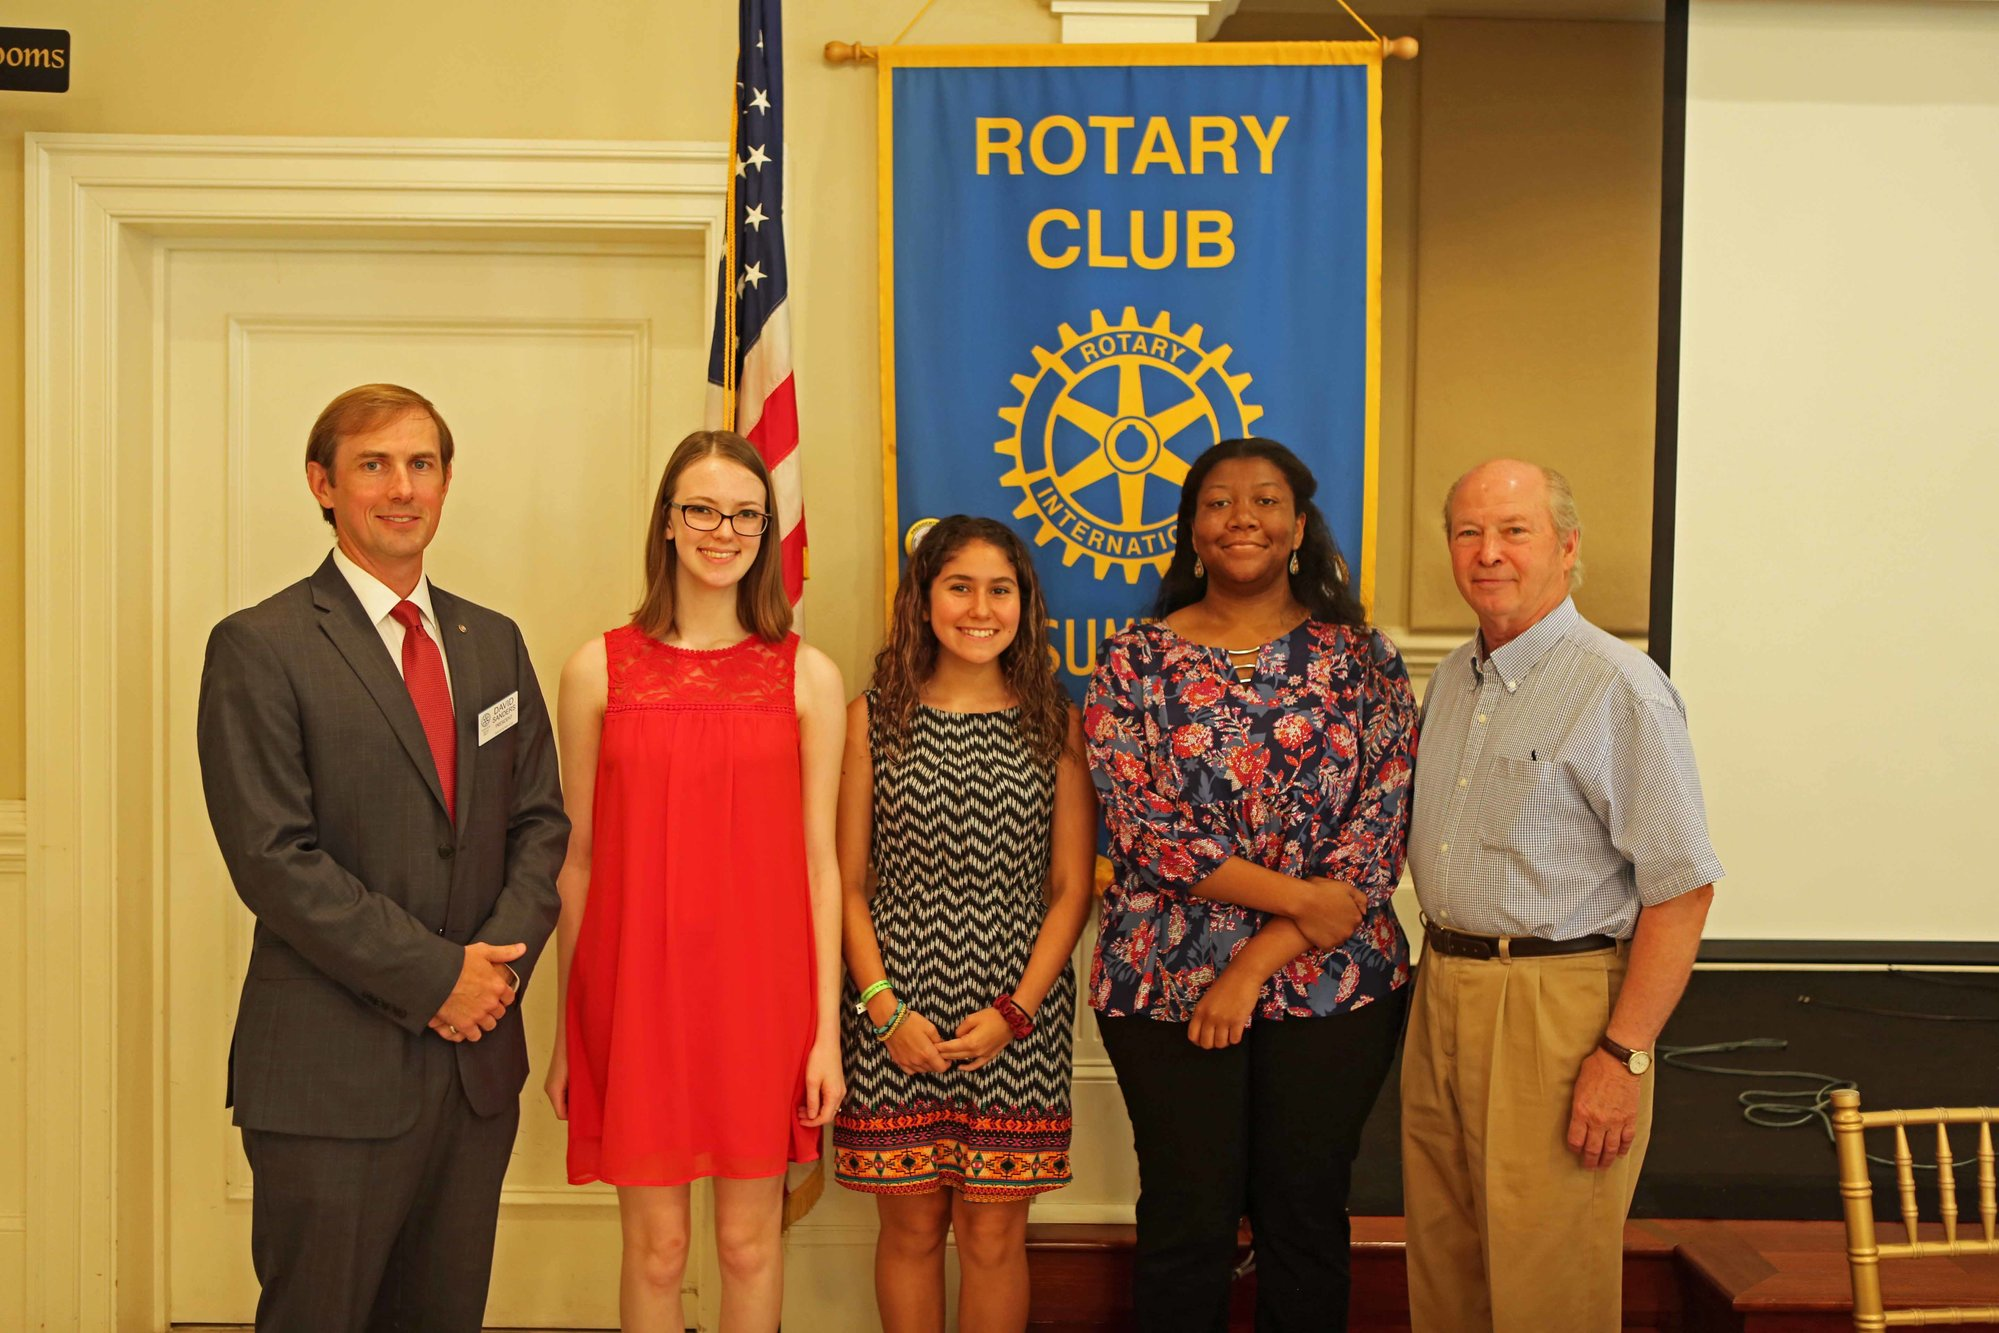 From left are David Sanders, president; Lauren Carneal; Sophia Houghton; Deja Lint; and Johnny Hilton. Absent from the photo is scholarship chairman Justin Johnson.